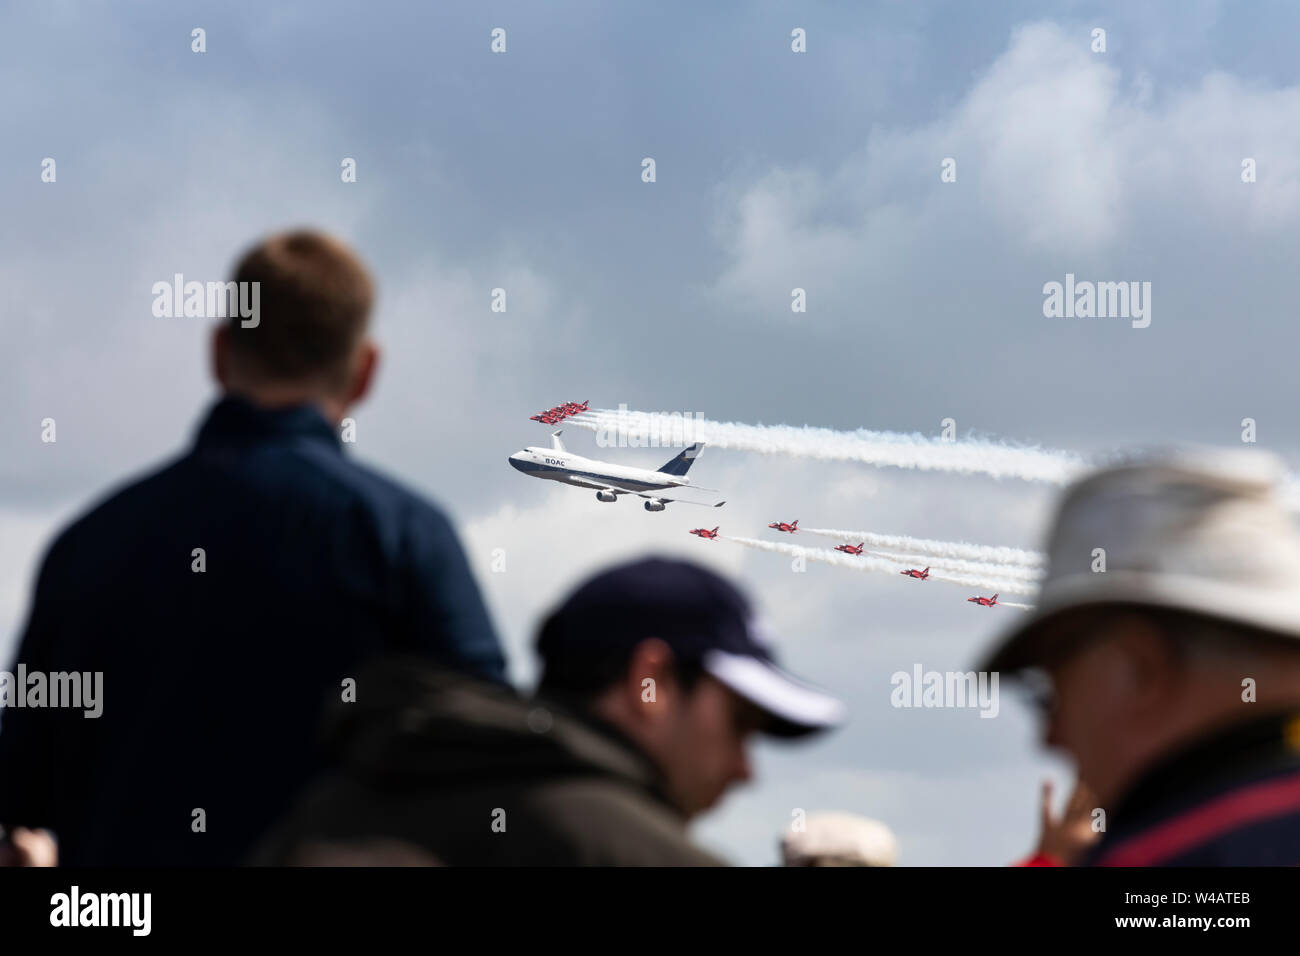 Red Arrows formation flight with British Airways BOAC livery